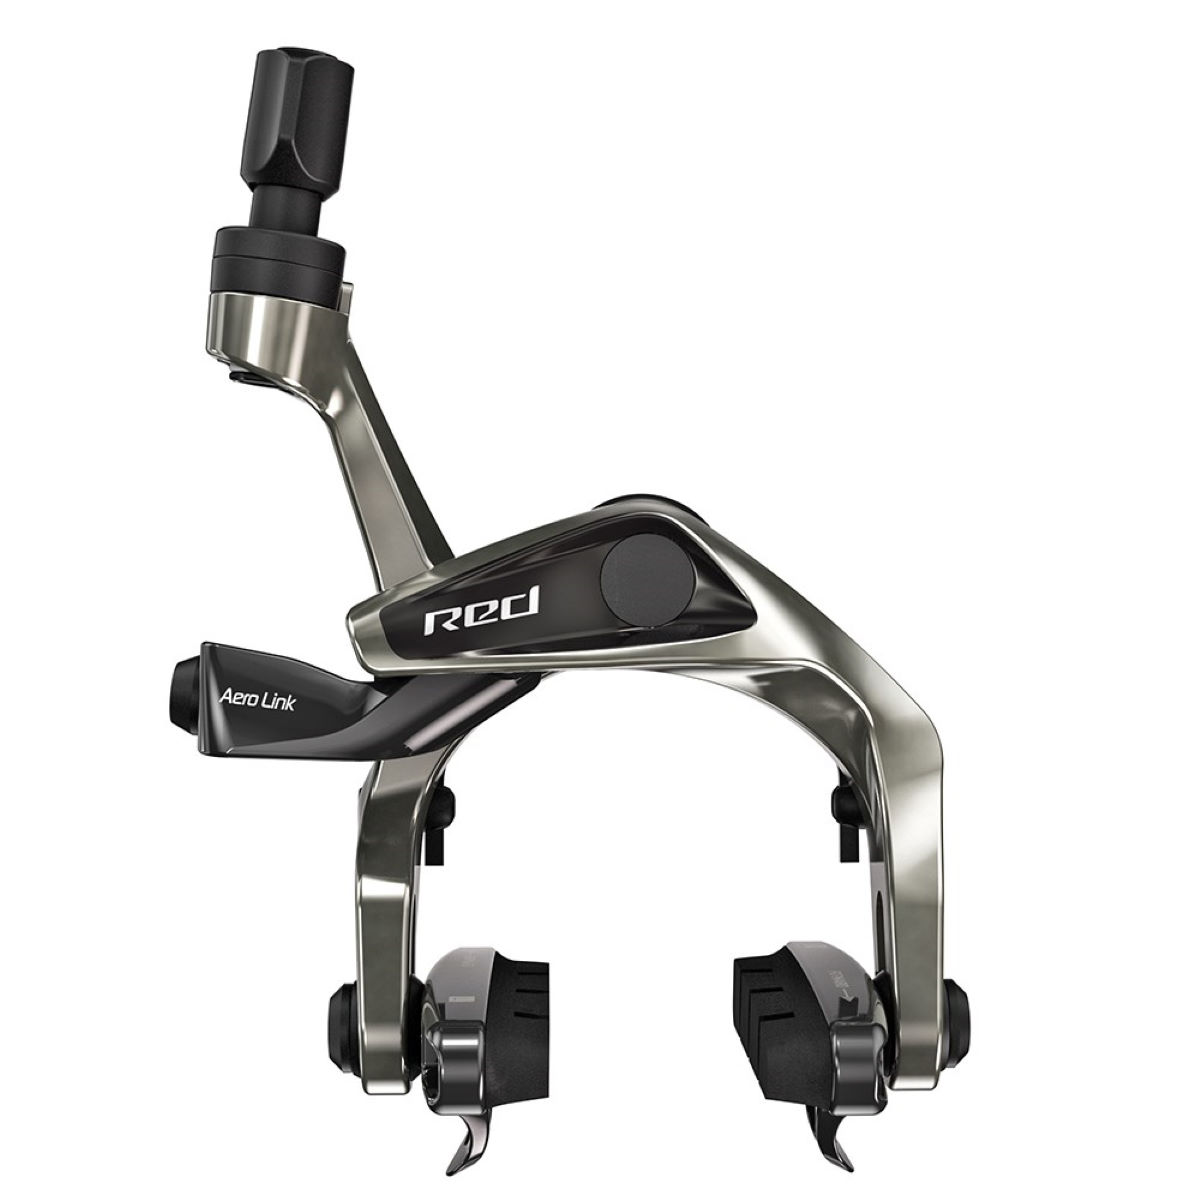 Freno caliper SRAM Red Aero Link - Frenos de llanta